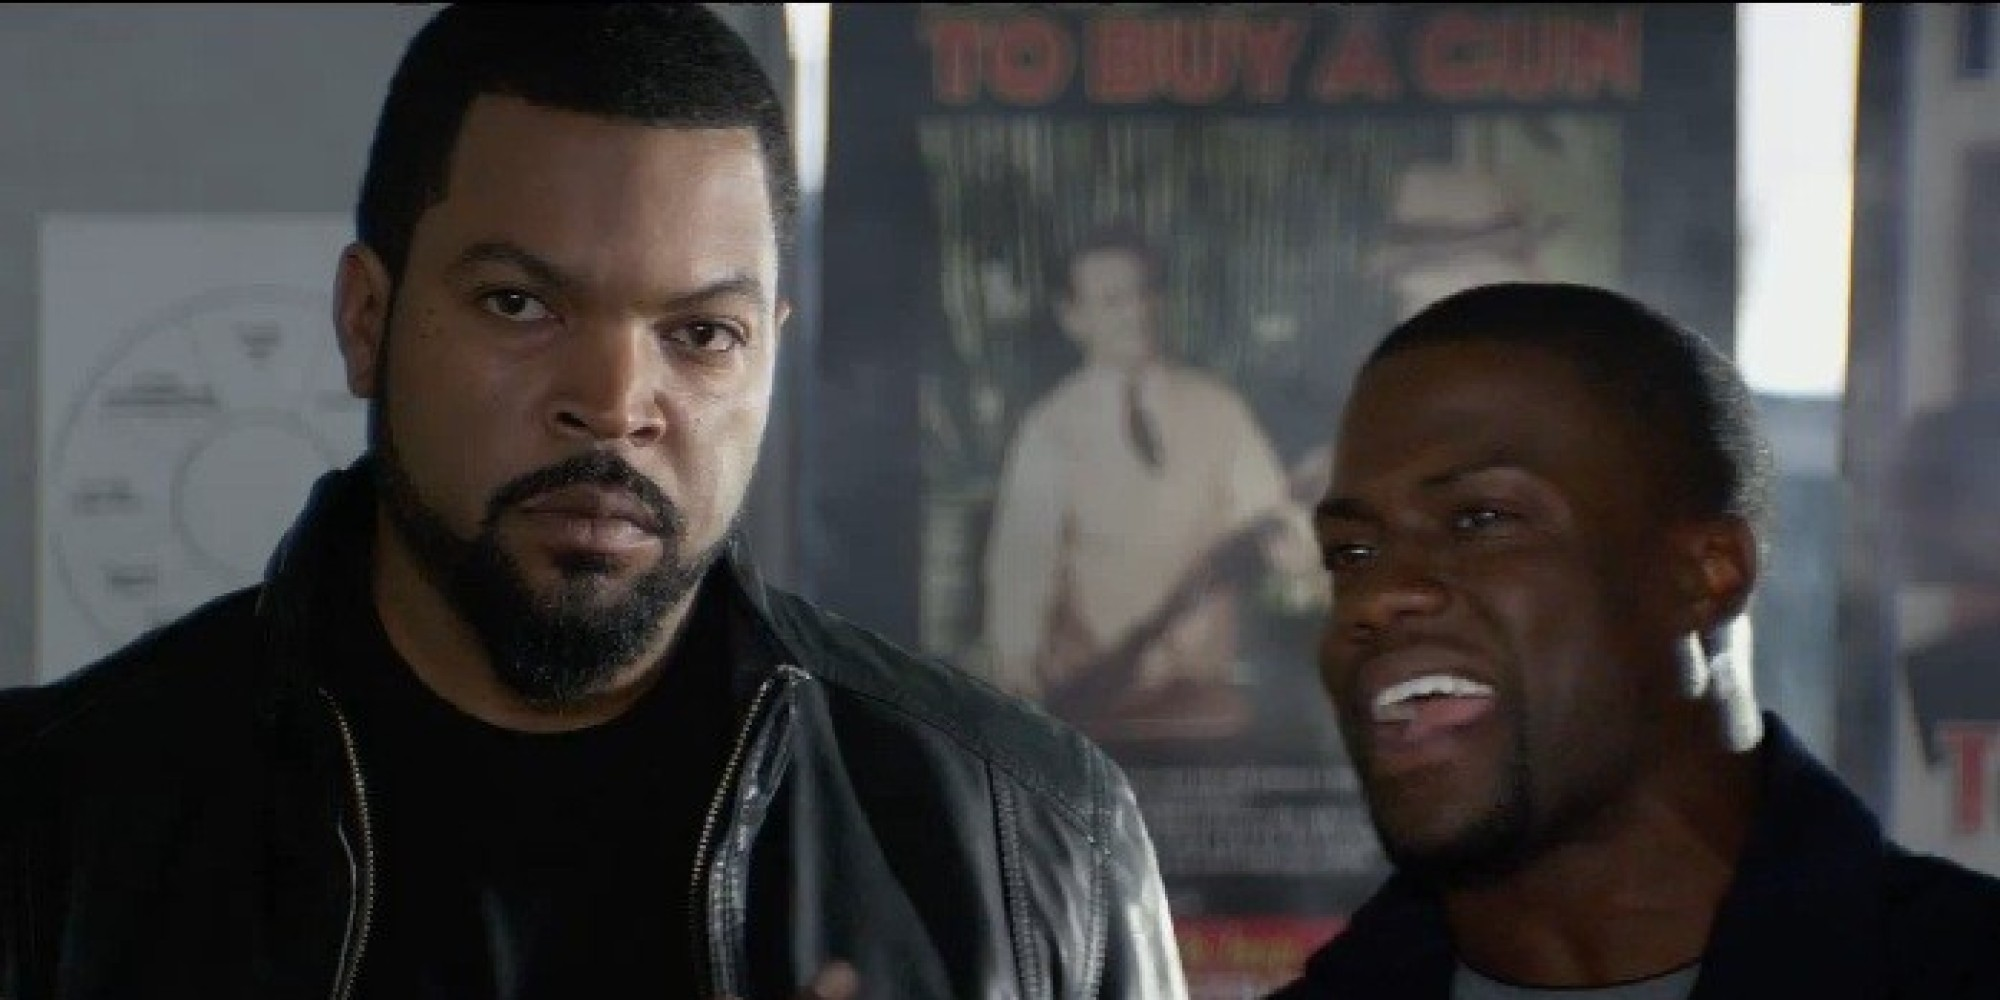 kevin hart amp ice cube discuss each other on conan video